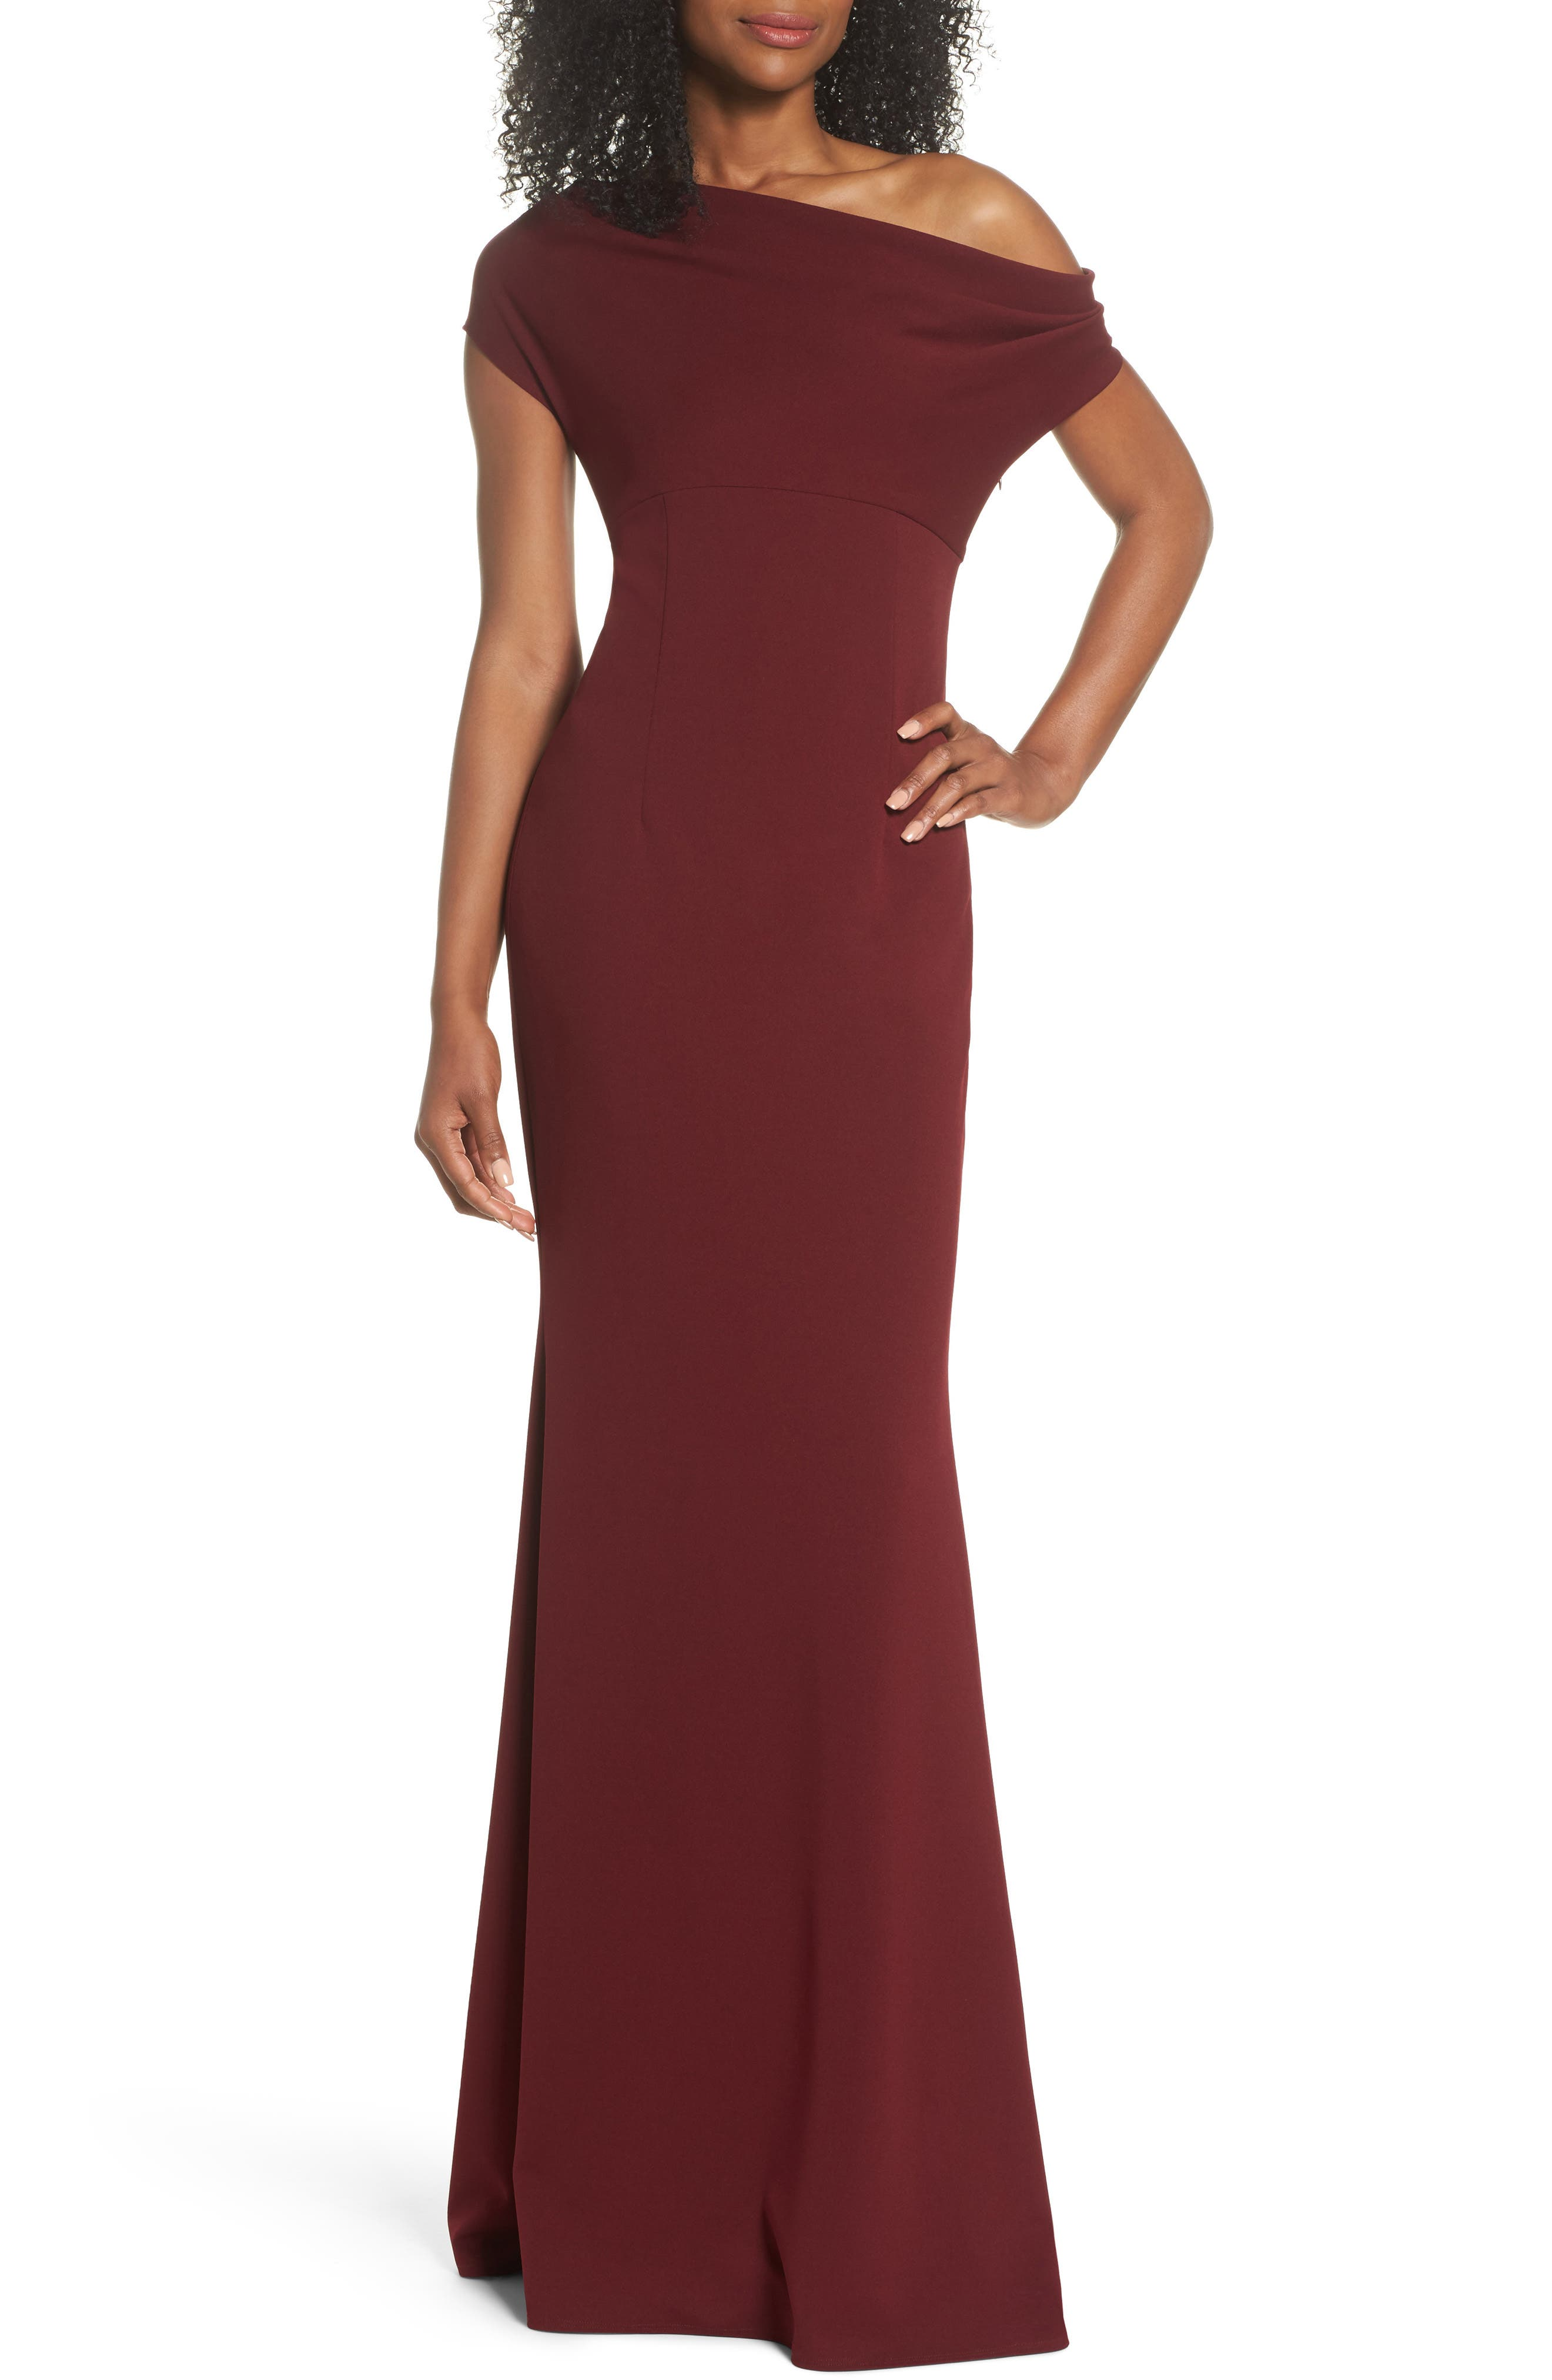 Katie May Hannah One-Shoulder Crepe Trumpet Gown, Burgundy